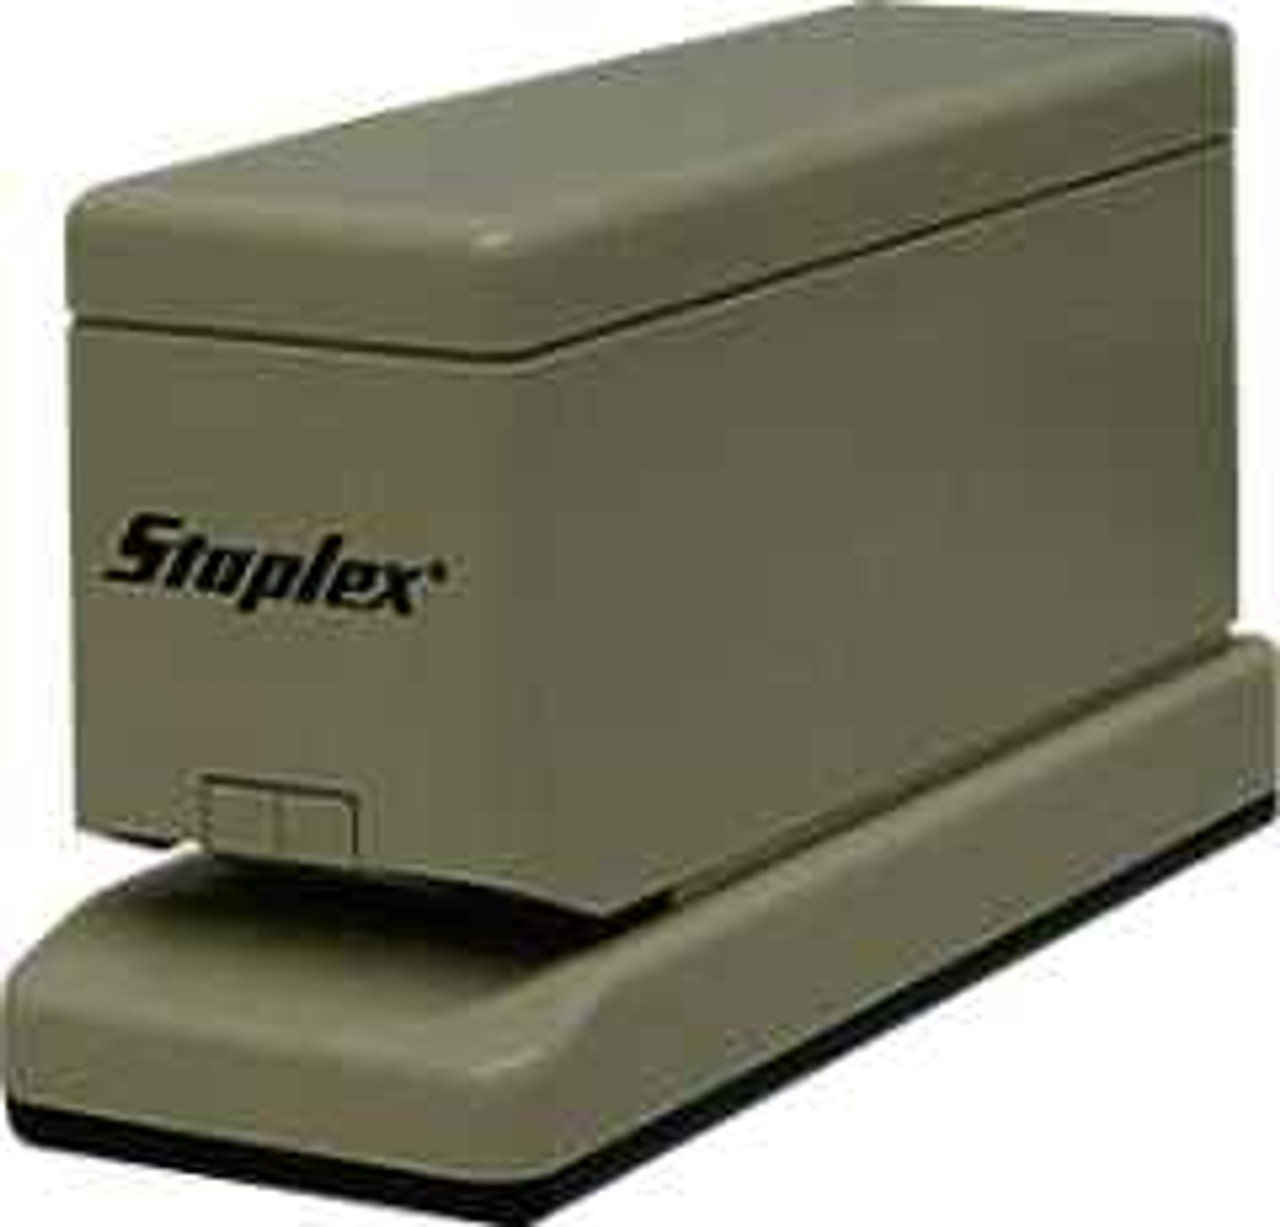 Staplex® SL Desktop Electric Stapler-Black